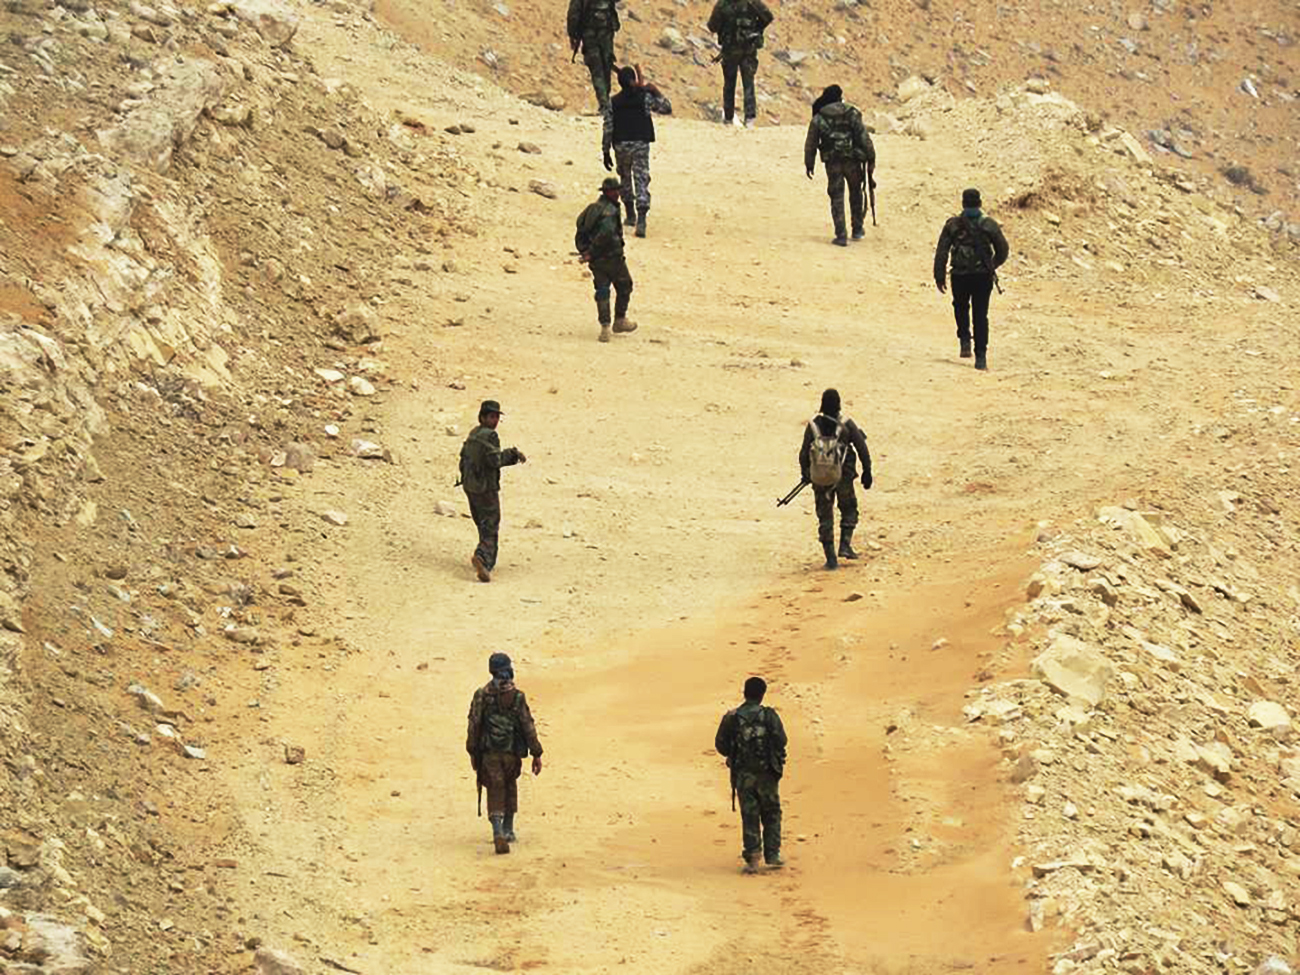 The Syrian Army regained control over the Al-Tar mount near the city, where it placed guns to cover troops. Source: Oleg Blokhin/Anna News